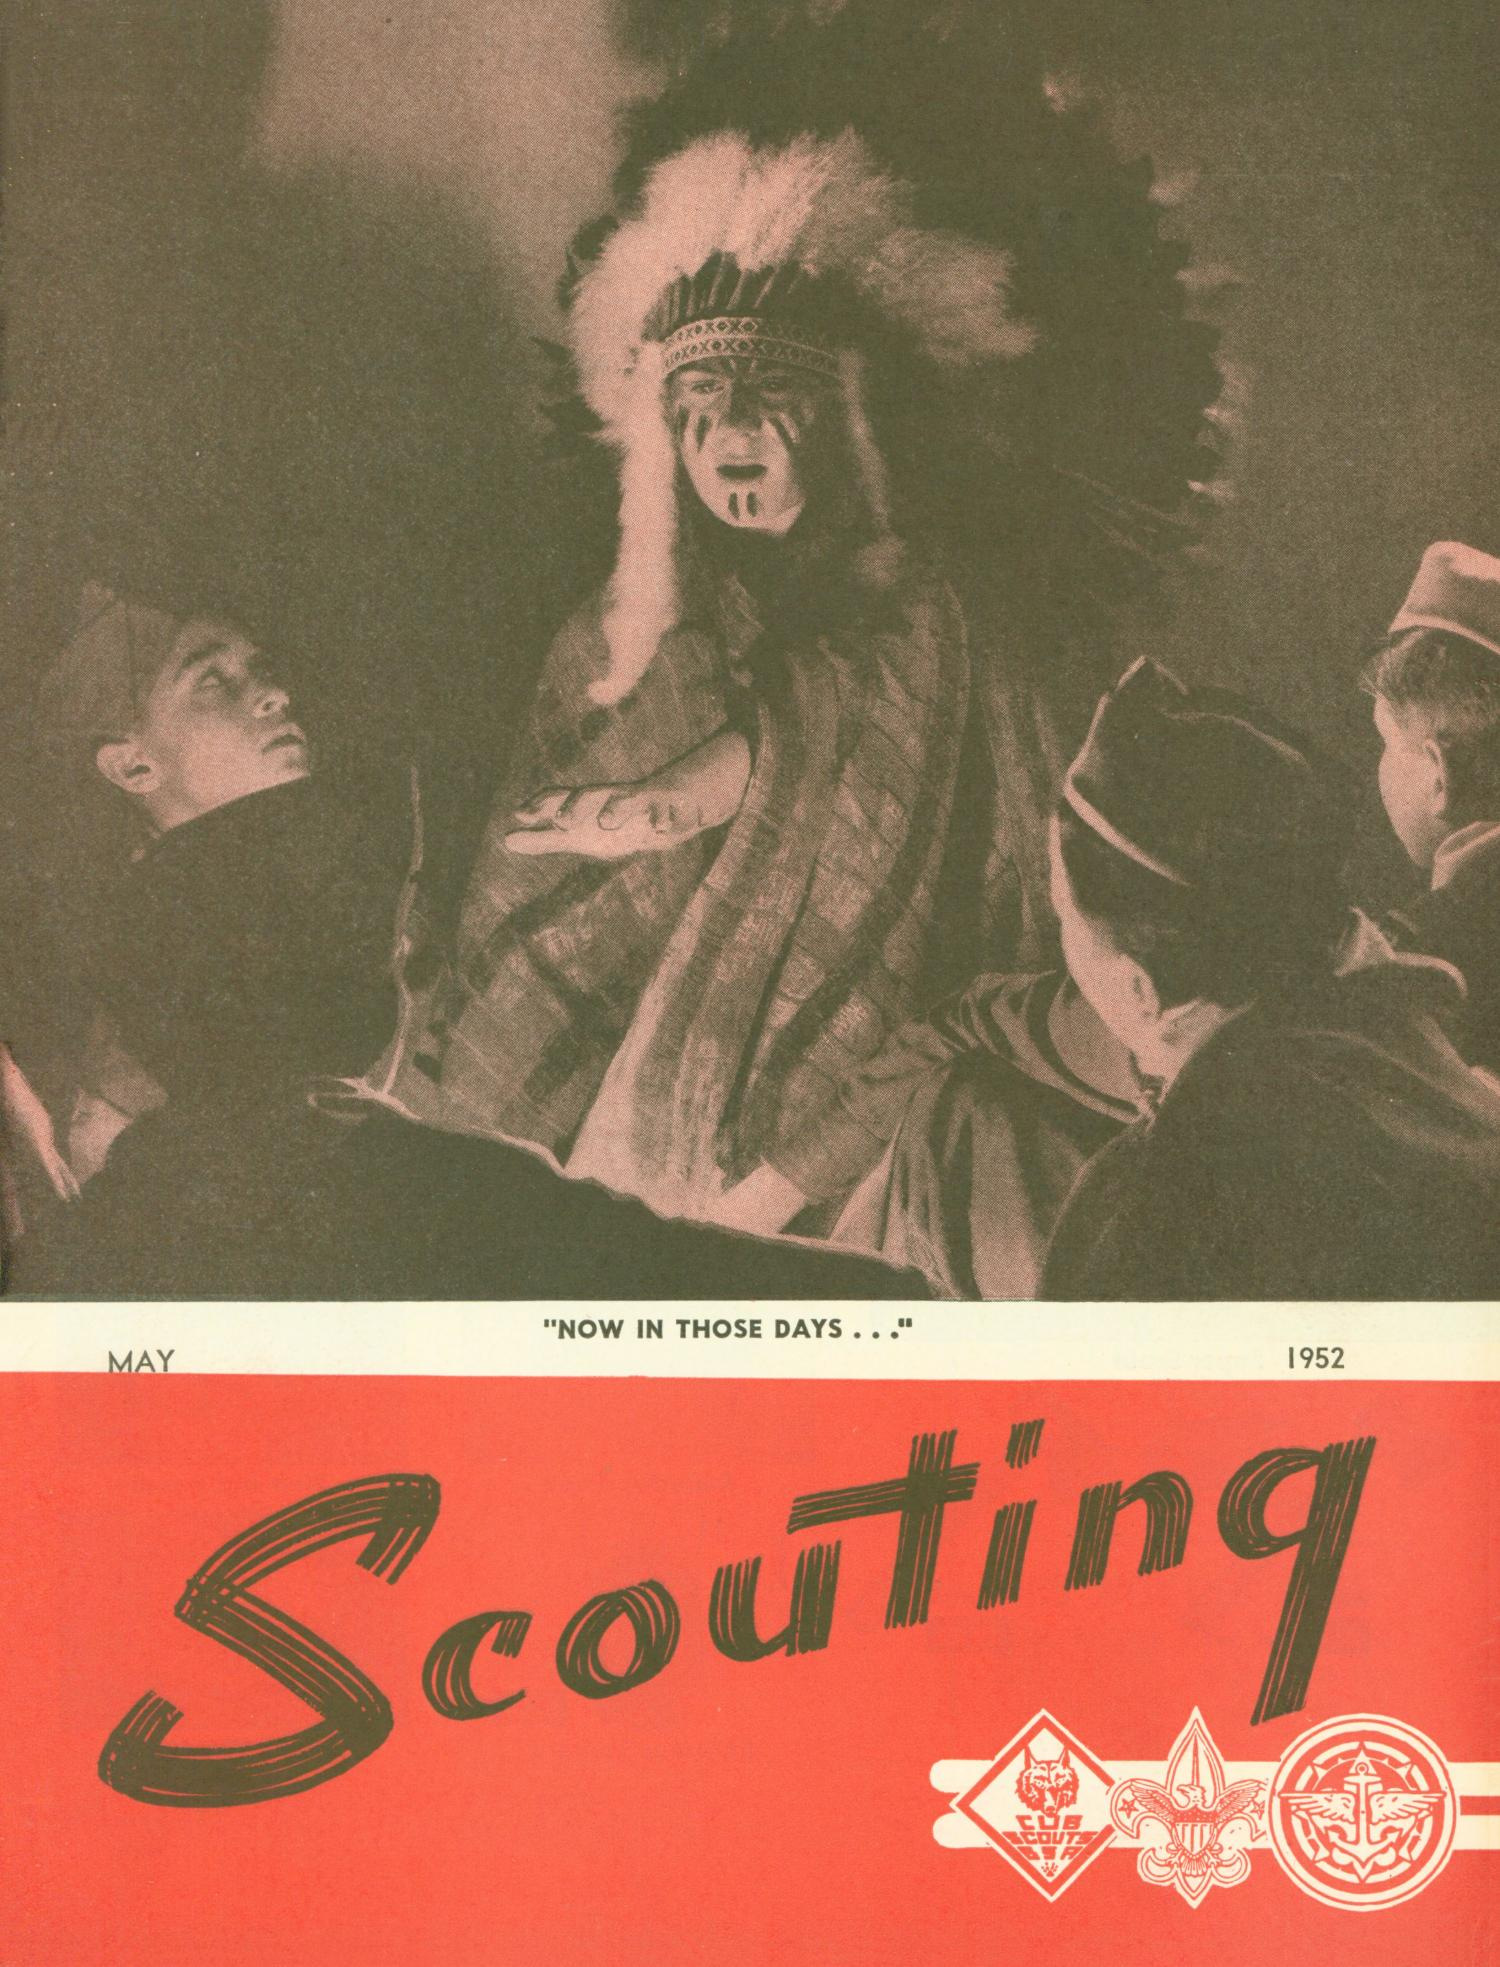 Scouting, Volume 40, Number 5, May 1952                                                                                                      Front Cover